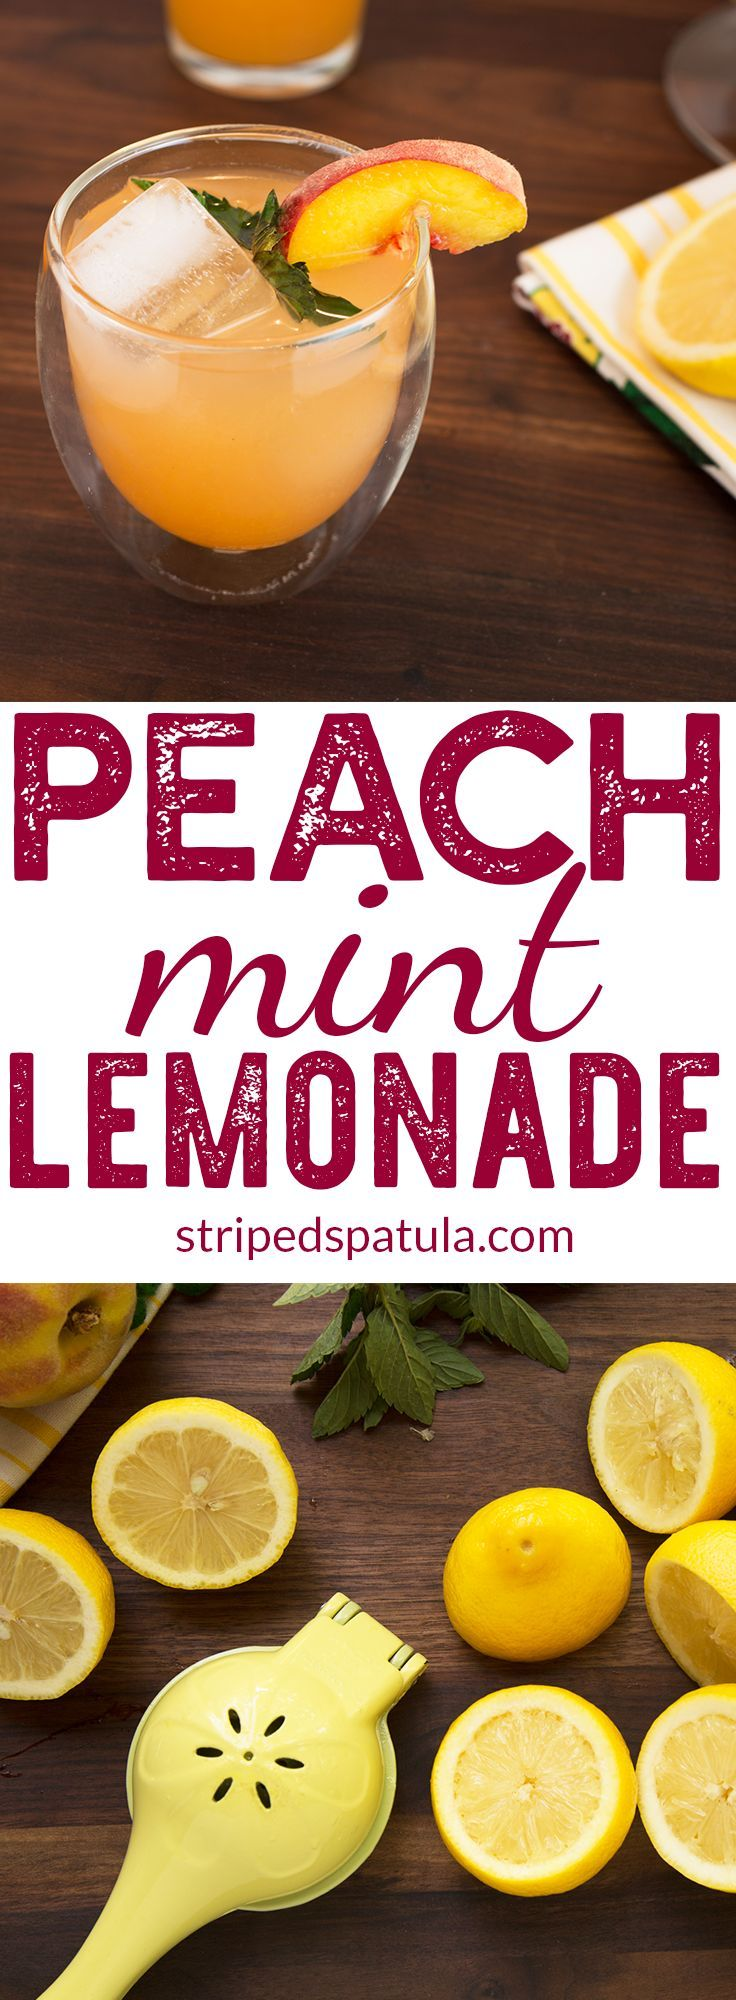 Lemonade | Lemonade Recipe | Homemade Lemonade | Peach Recipes | Drinks nonalcoholic